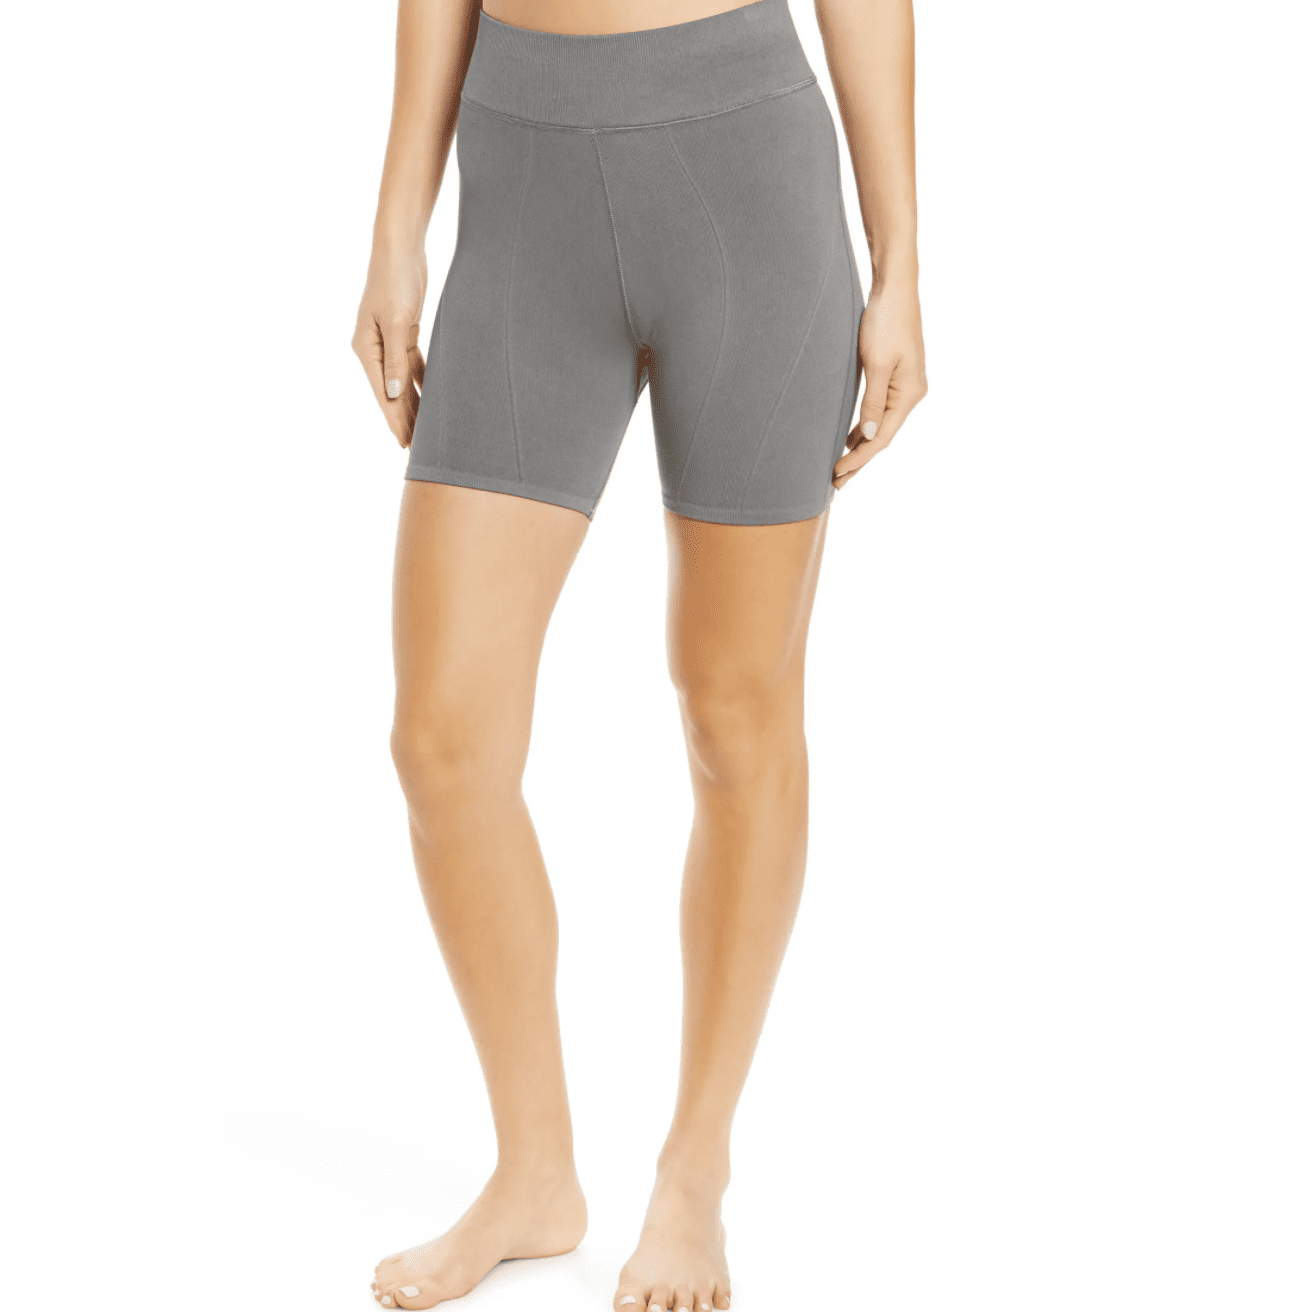 Free People Let's Go Seamless Bike Shorts